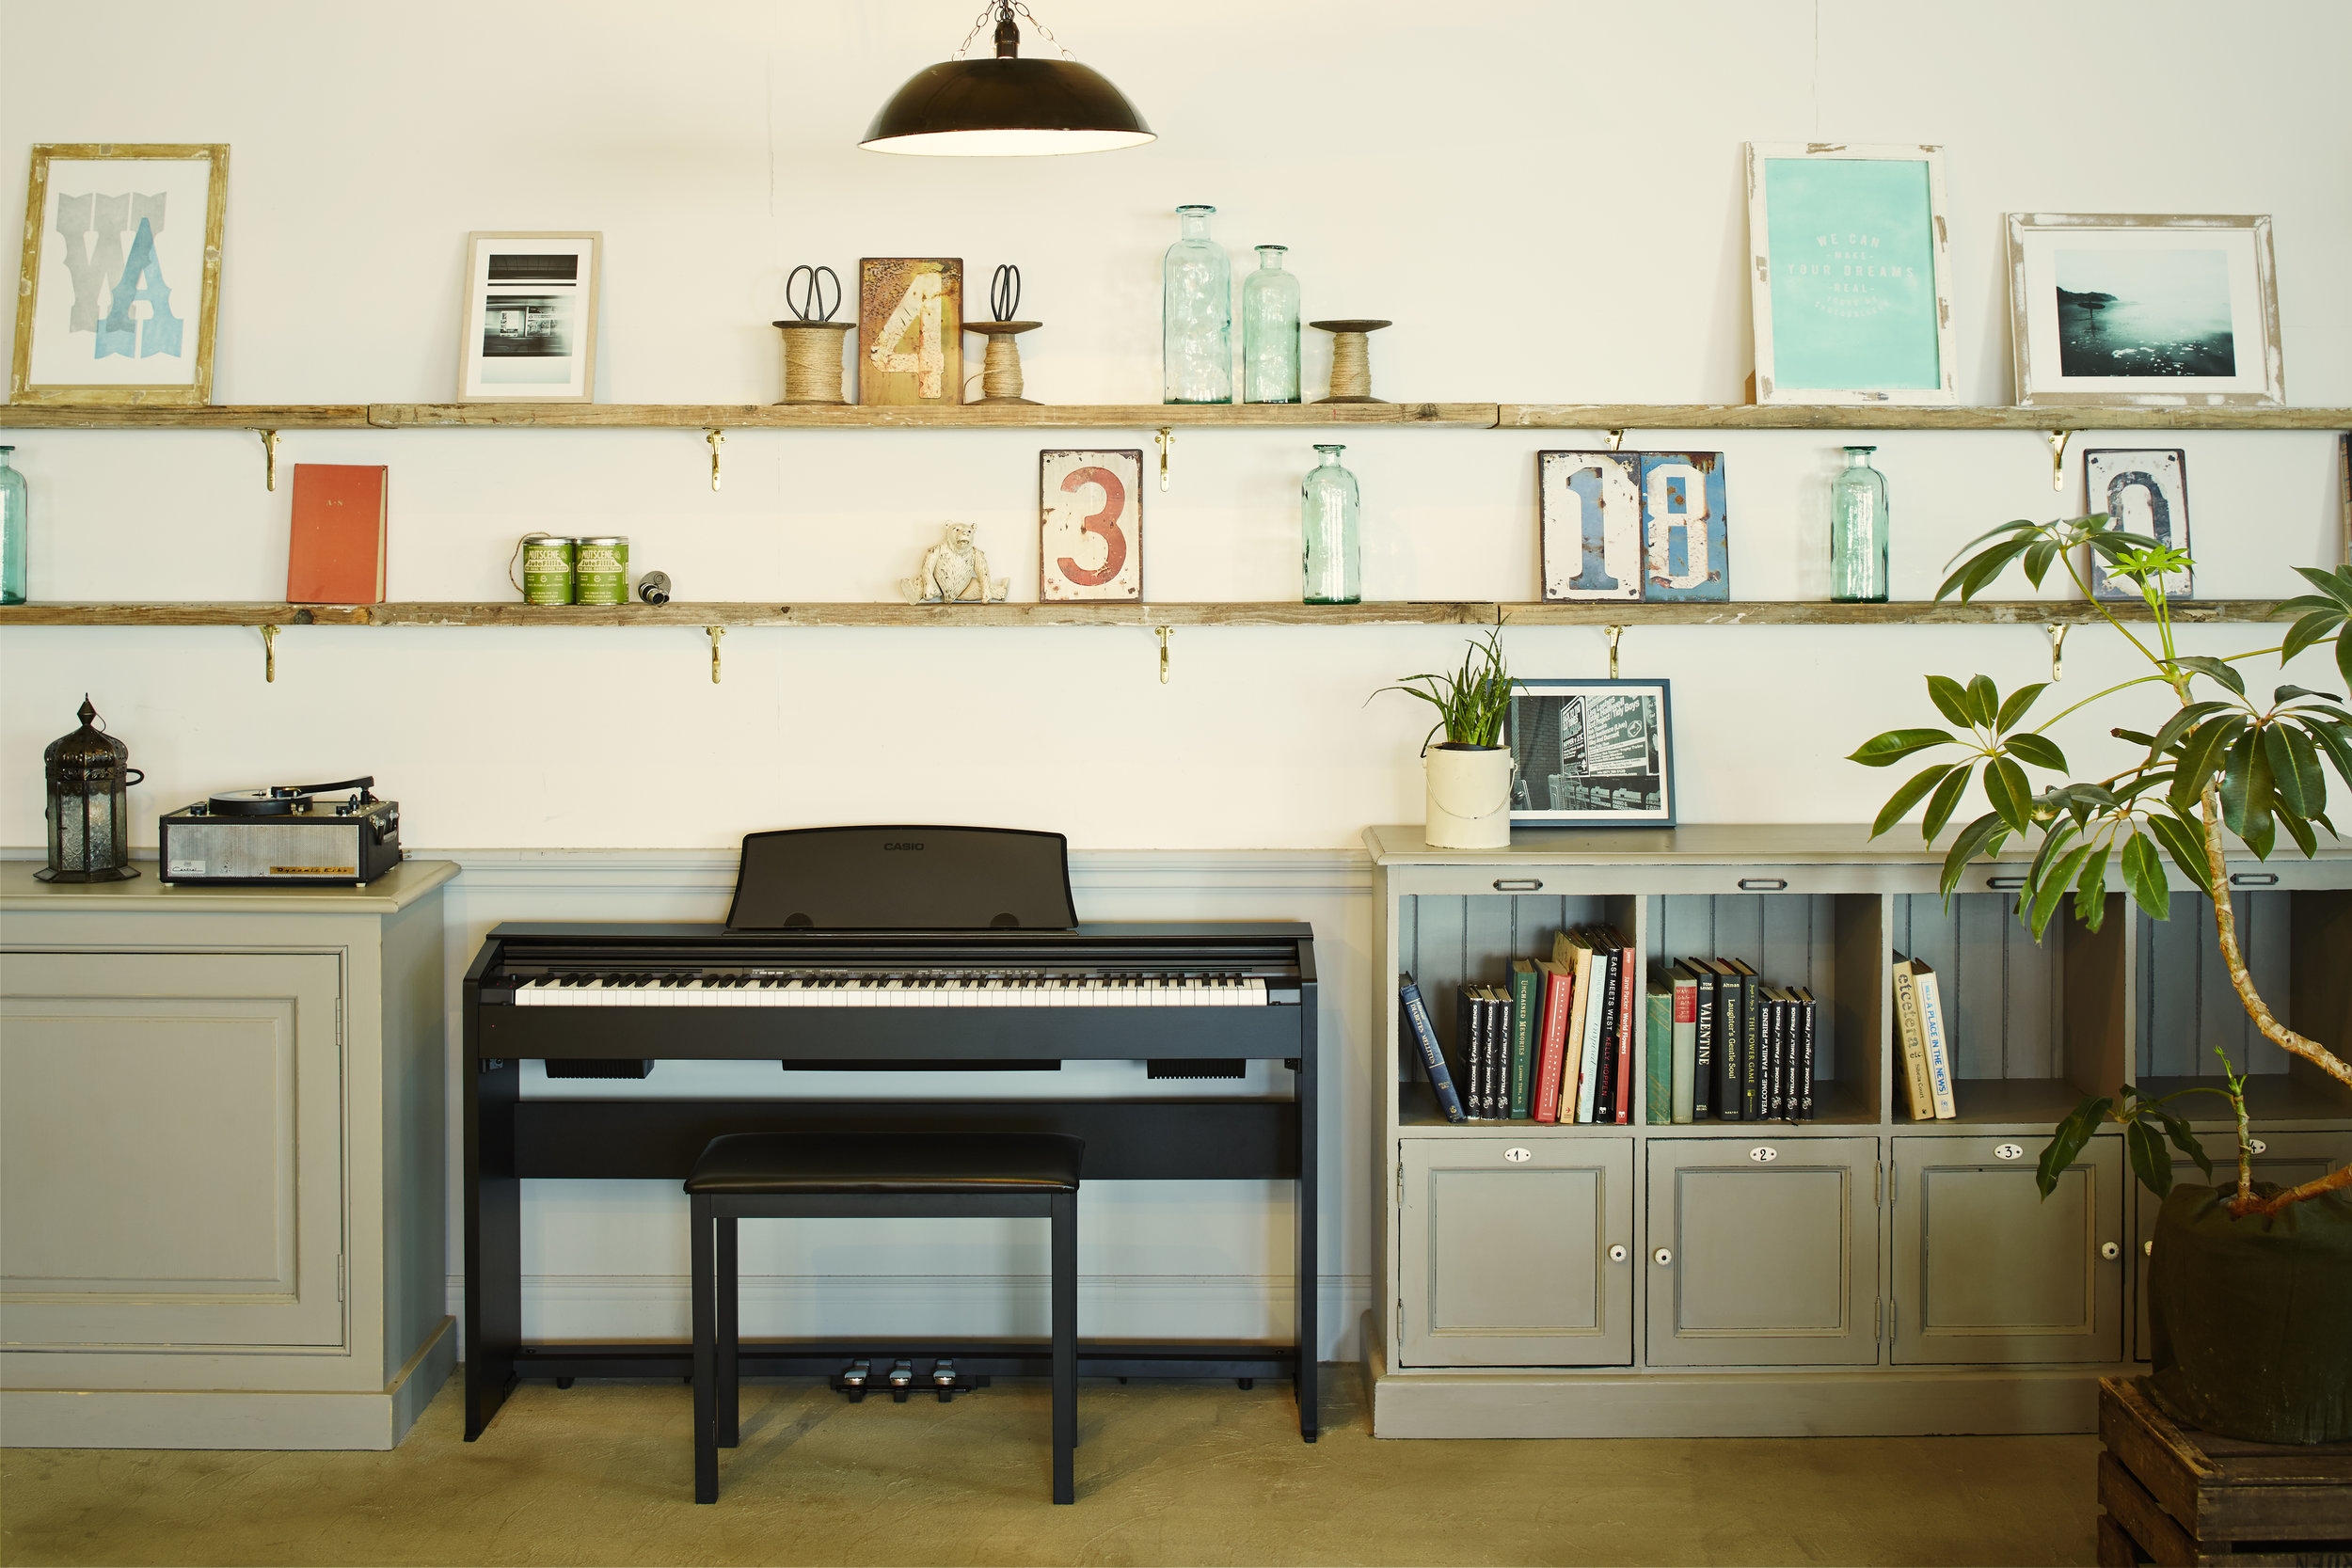 The Casio Privia: Perfect for small living spaces.